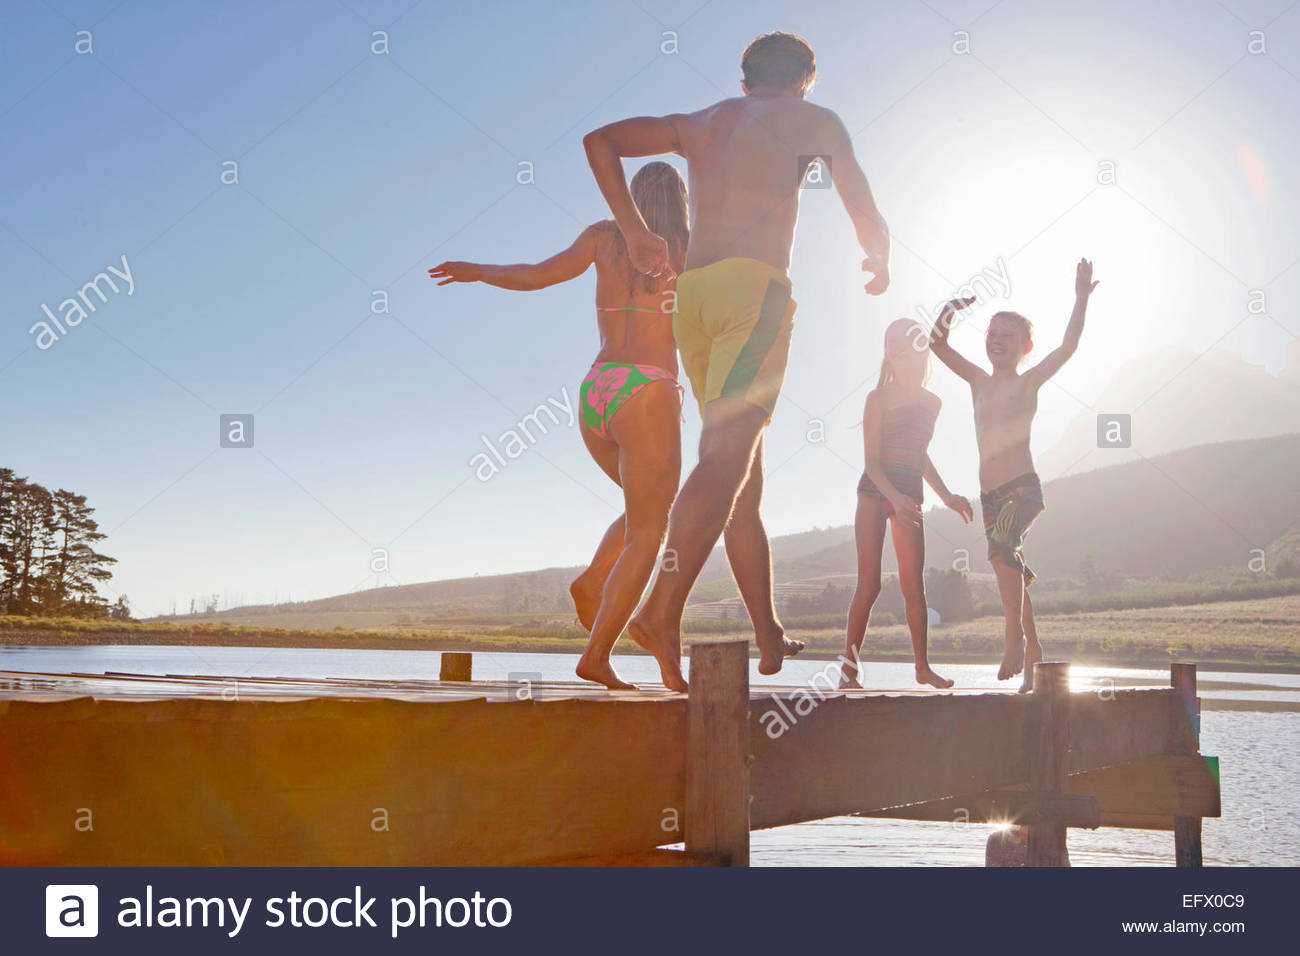 Happy family running and jumping on jetty - Stock Image